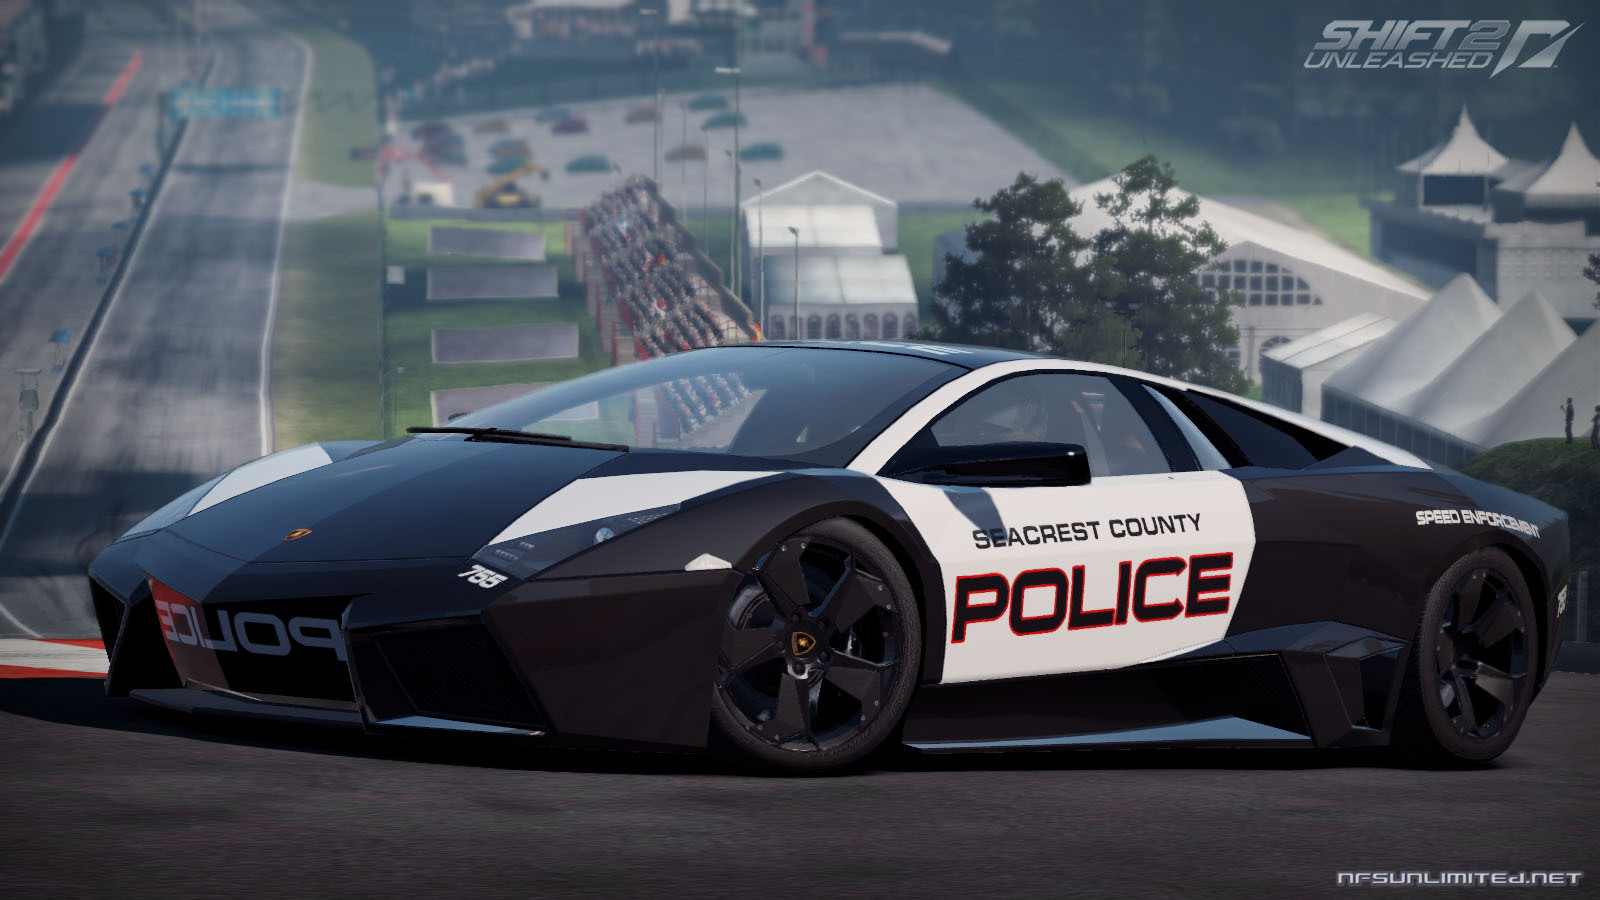 Lamborghini Reventon Police Car wallpaper - ForWallpaper.com